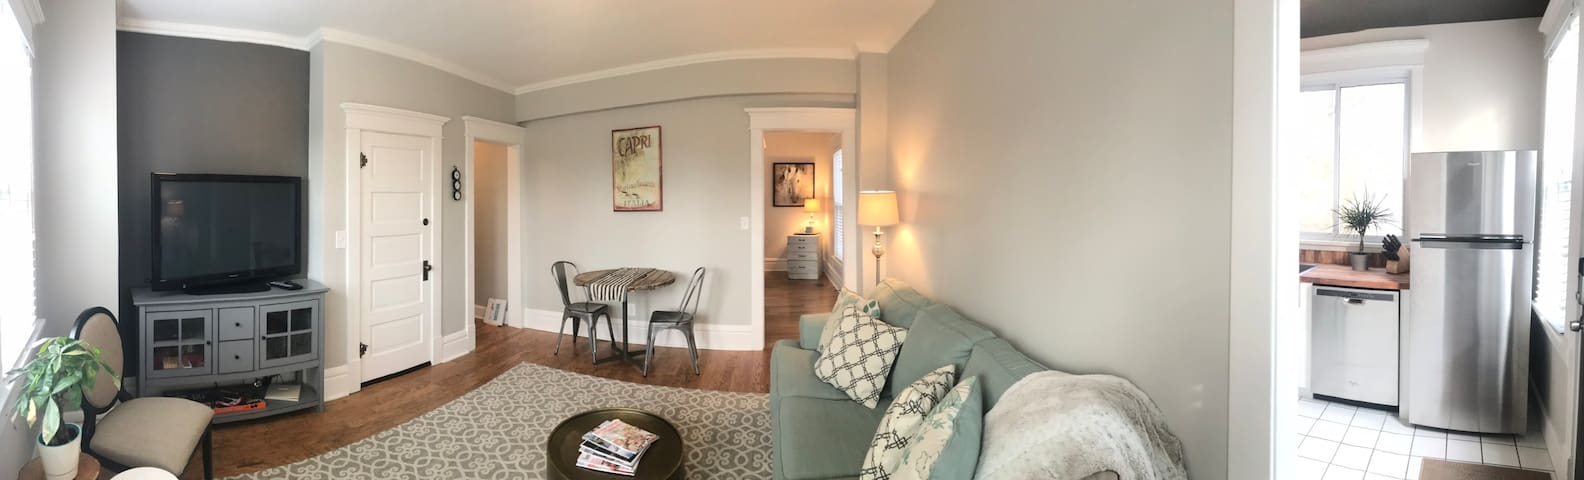 Living room with queen sleeper sofa! All new and beautifully decorated.  Large flat screen tv, games, card table, Additional eating space and work space!  Hallway leading to queen bedroom and common bathroom.